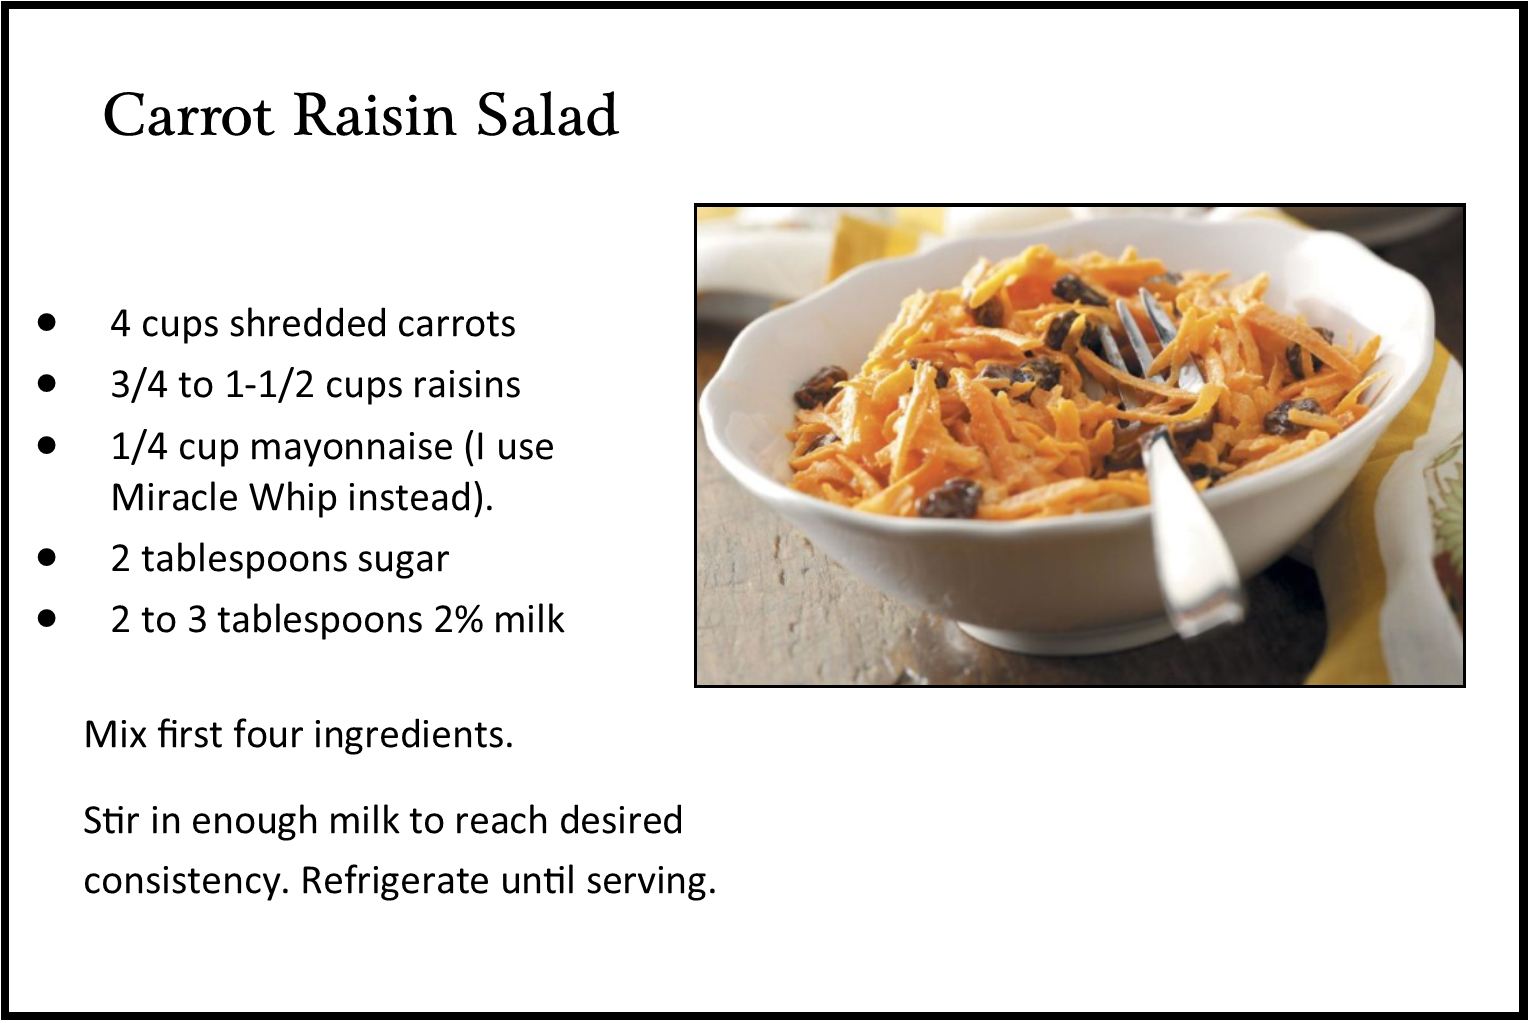 carrot raisin salad pic